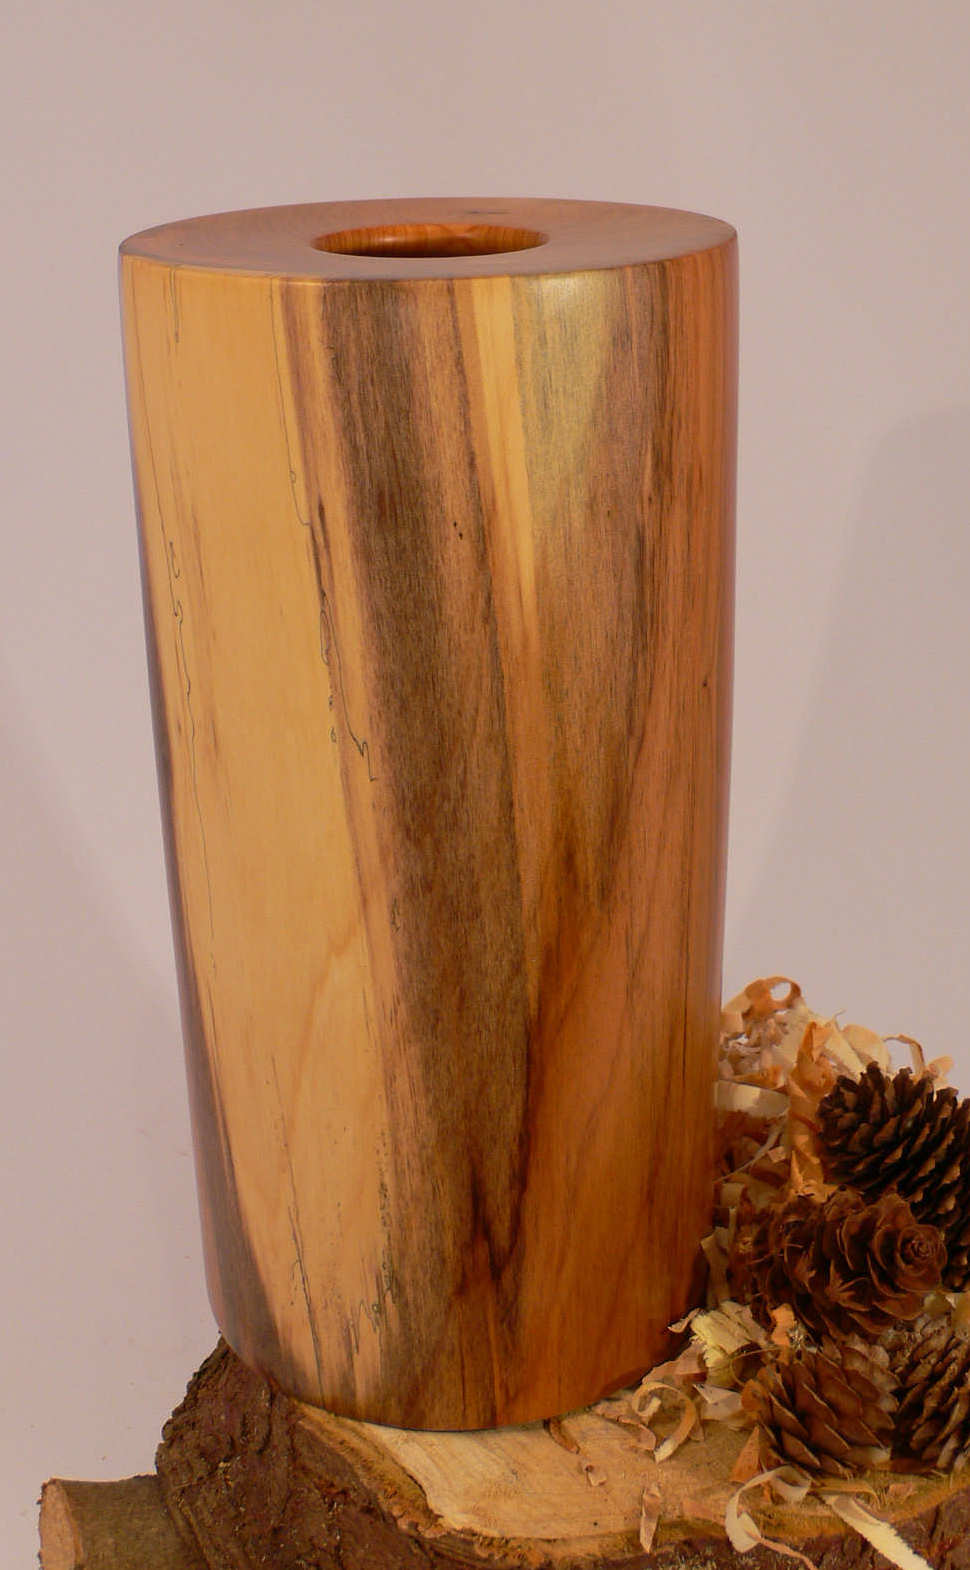 Wood art by Chris Rymer of Inside Out Wood Art made from - Yew